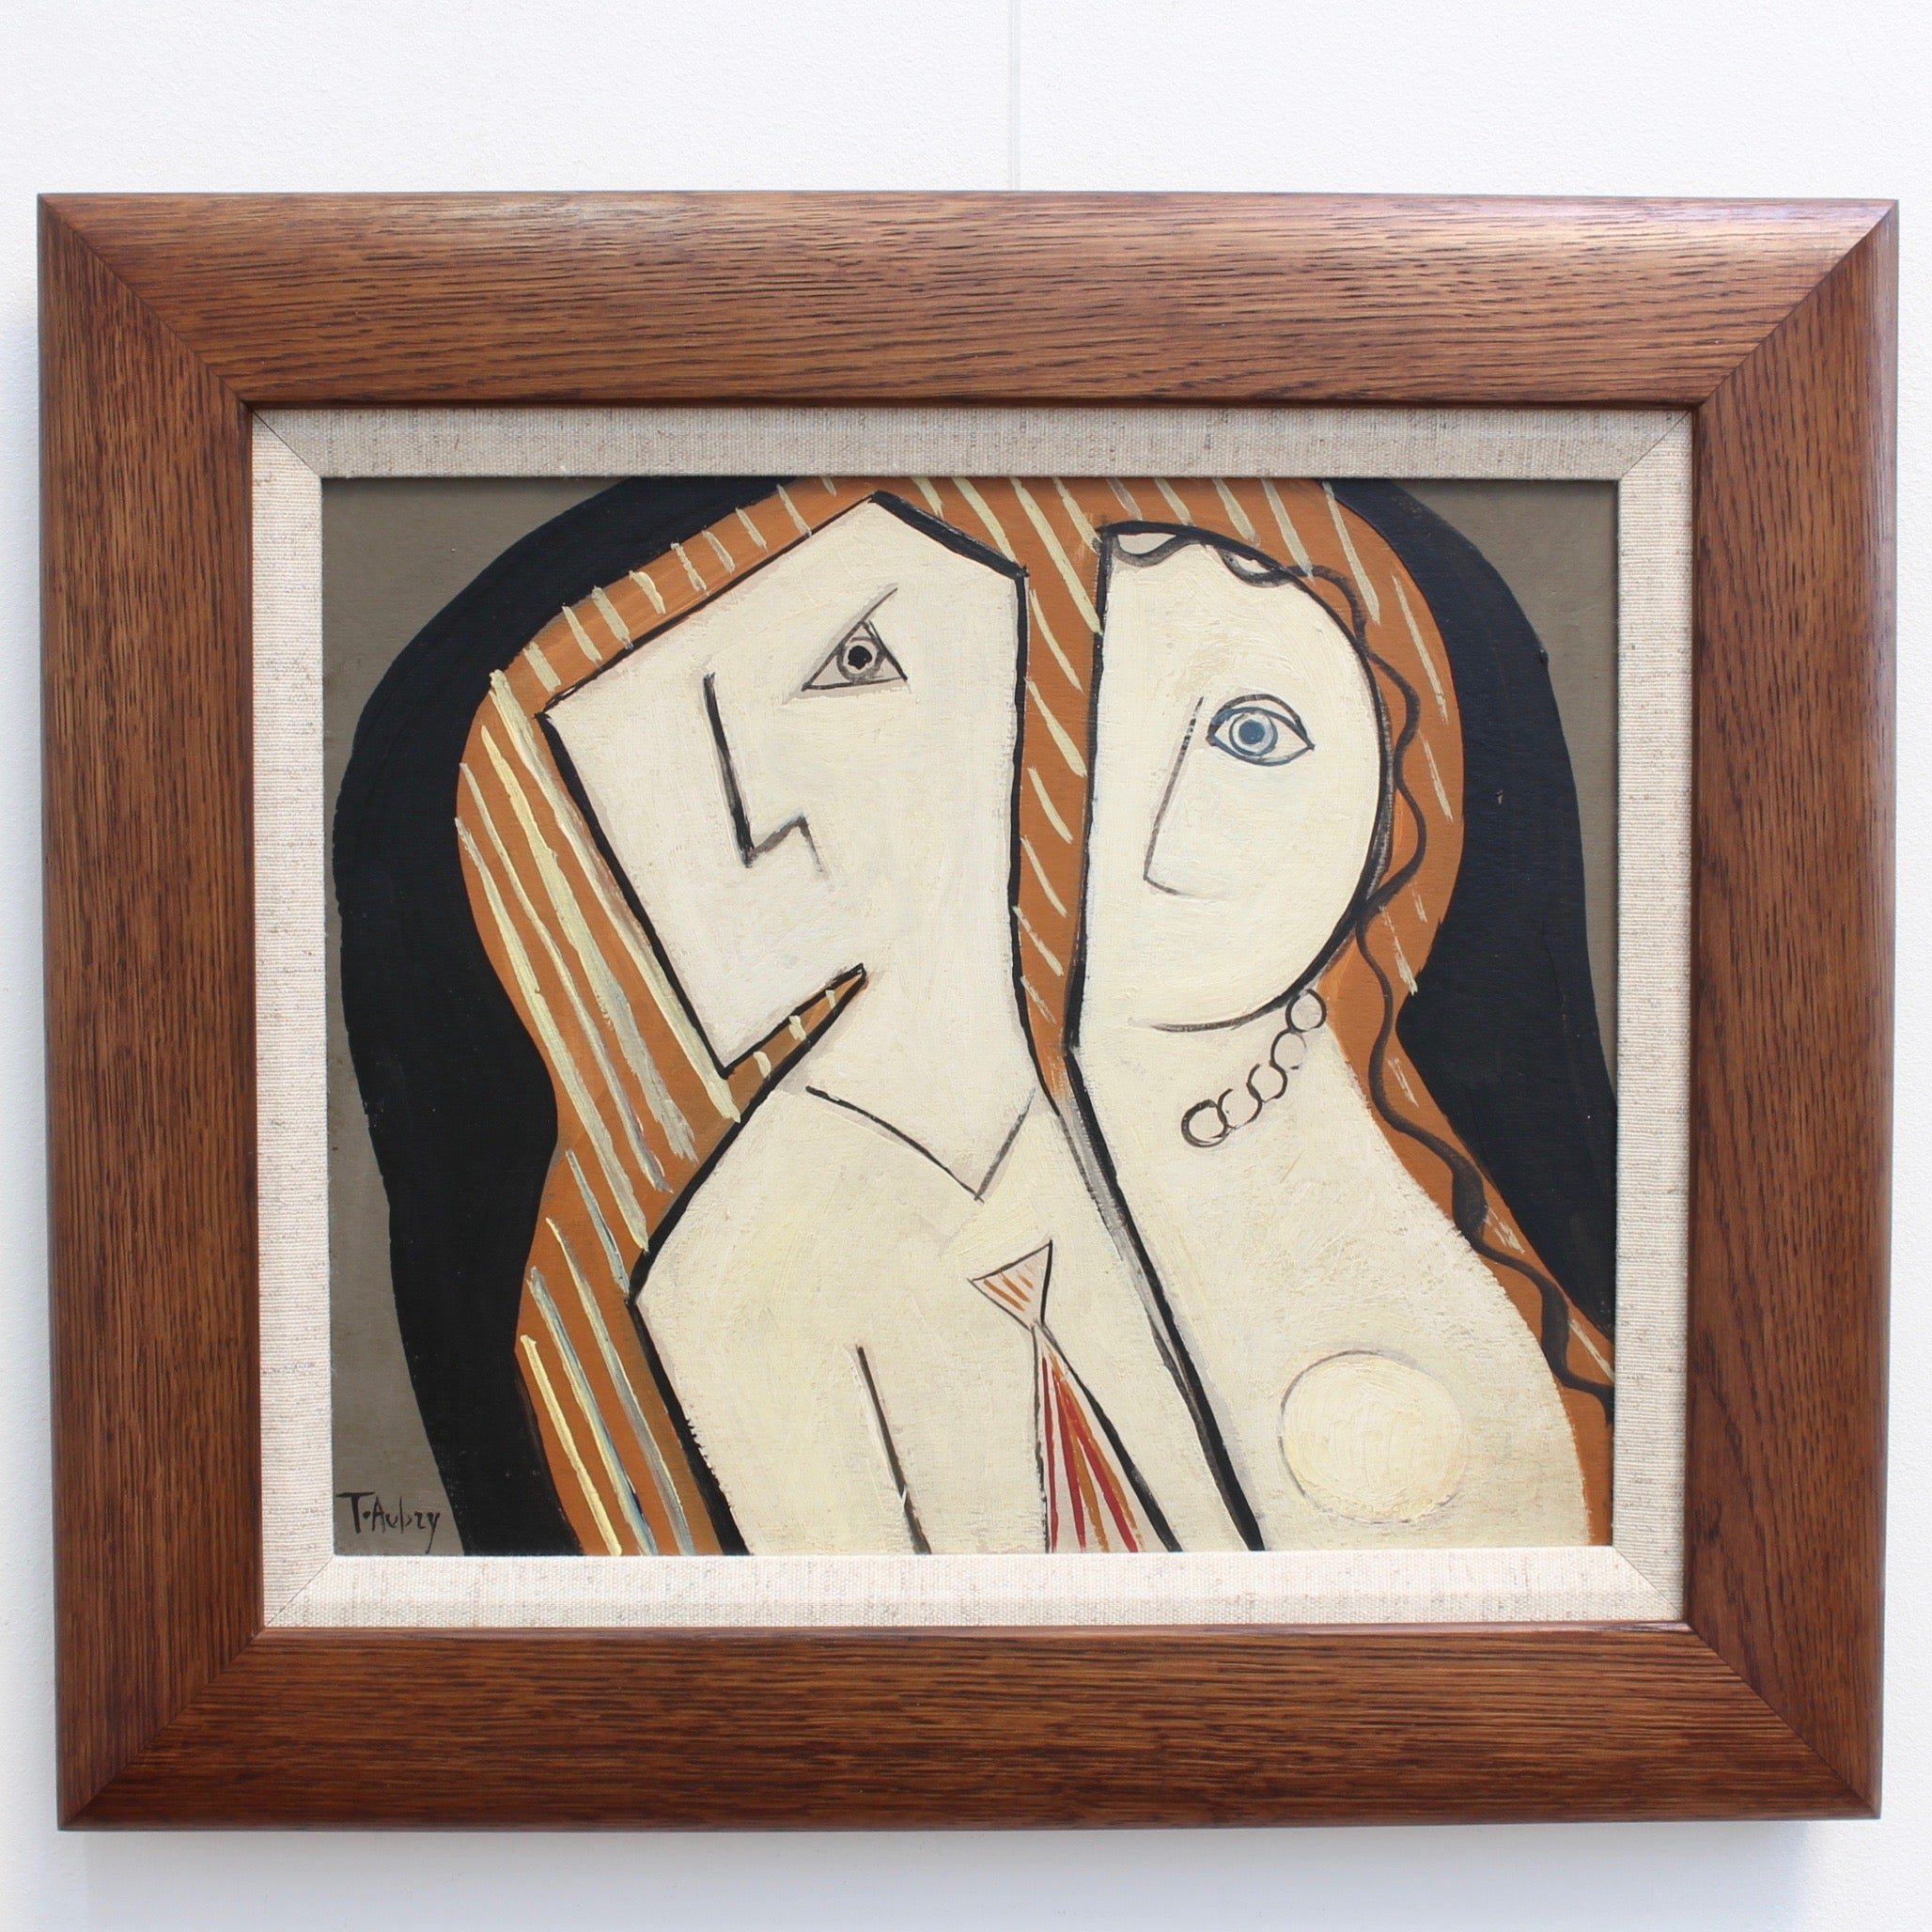 'Inseparable' by T. Aubry (French School circa 1950s - 60s)